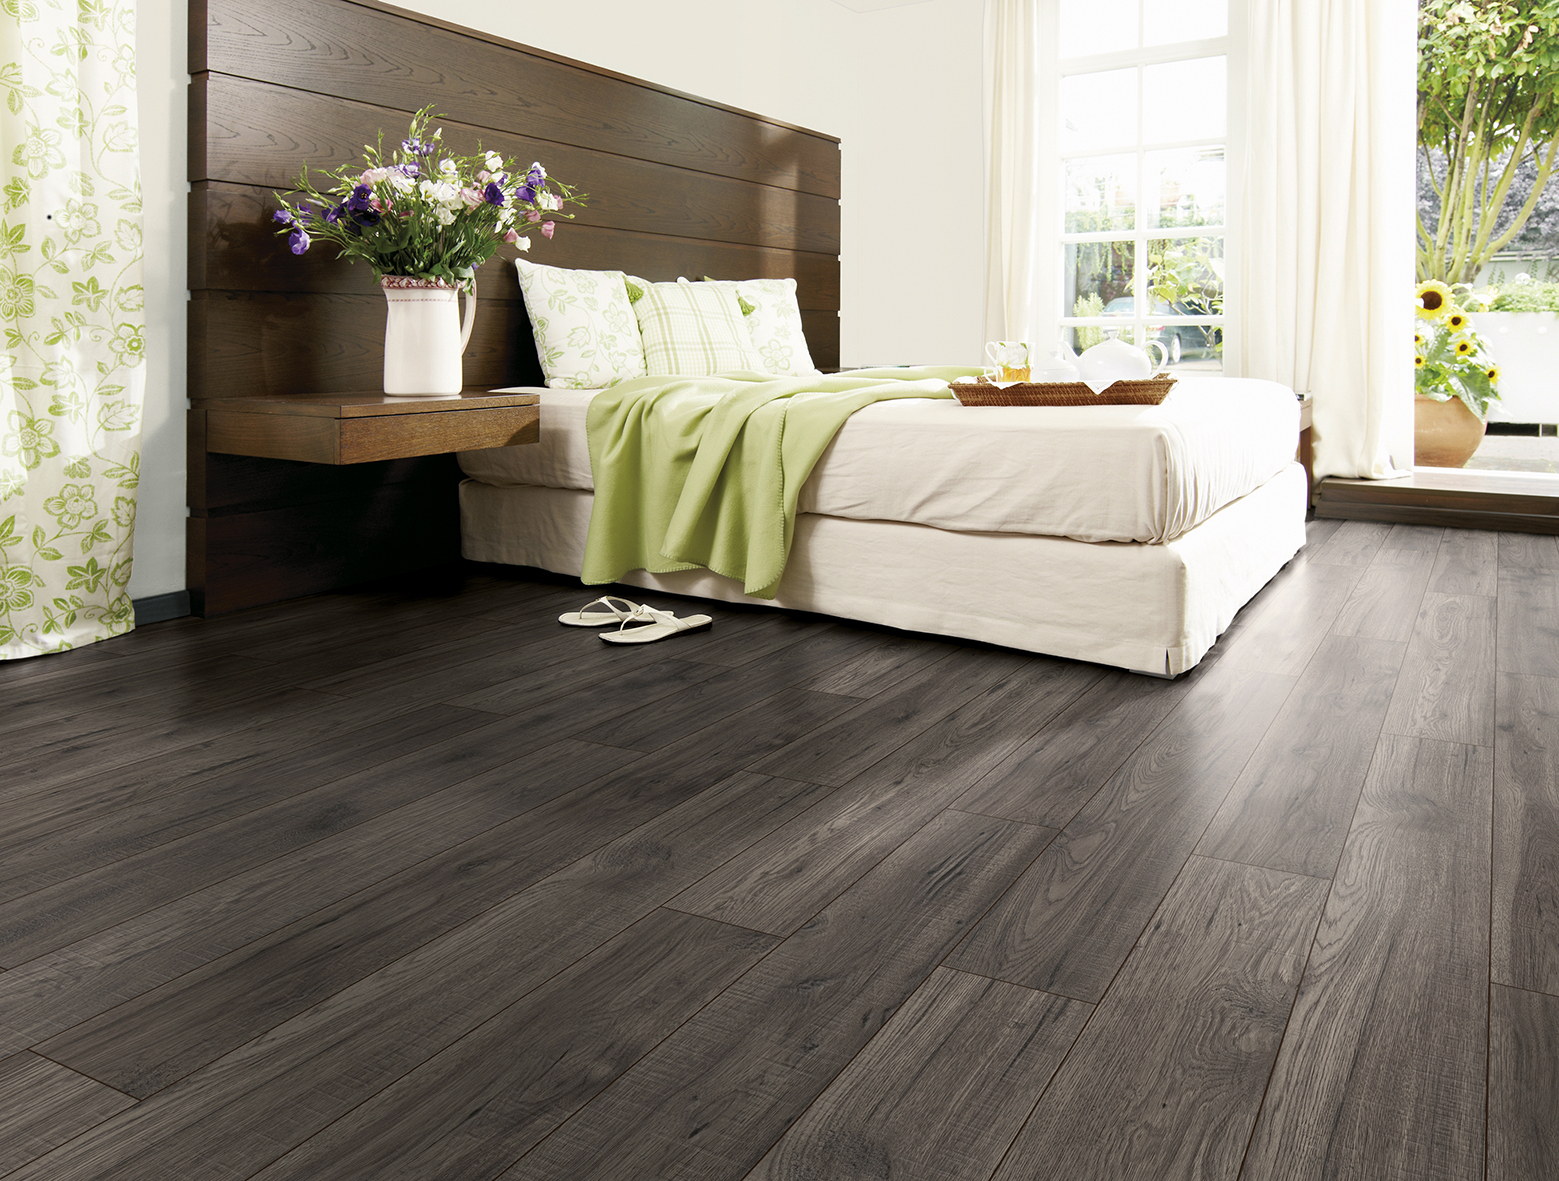 Formica laminate flooring sensational design formica laminate flooring the look and feel of timber  but KYJQPTT